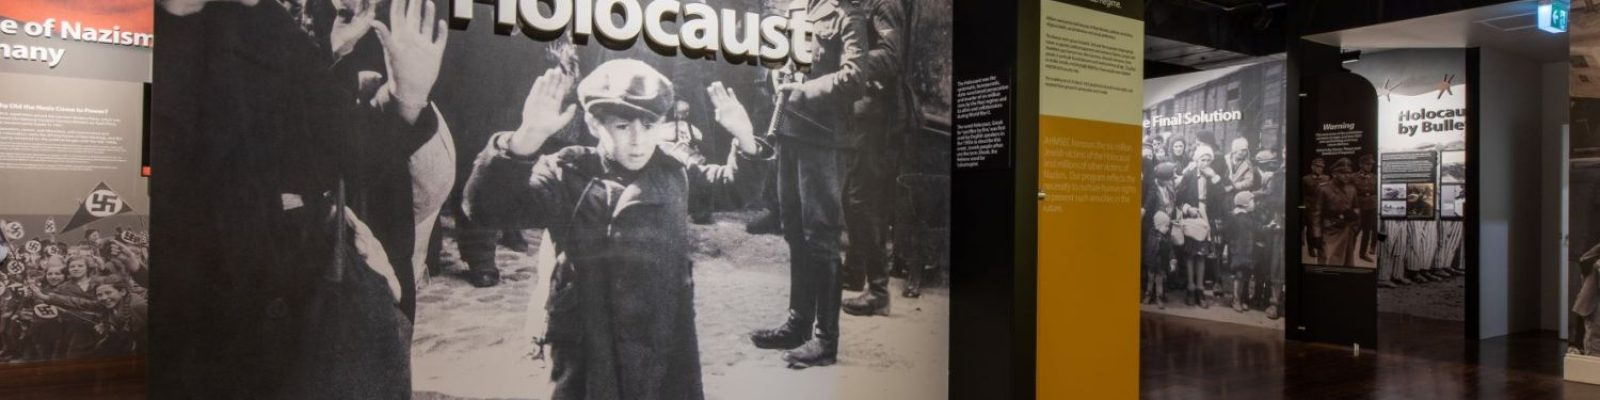 Large image of a young boy with hands raised under a sign reading 'The Holocaust'